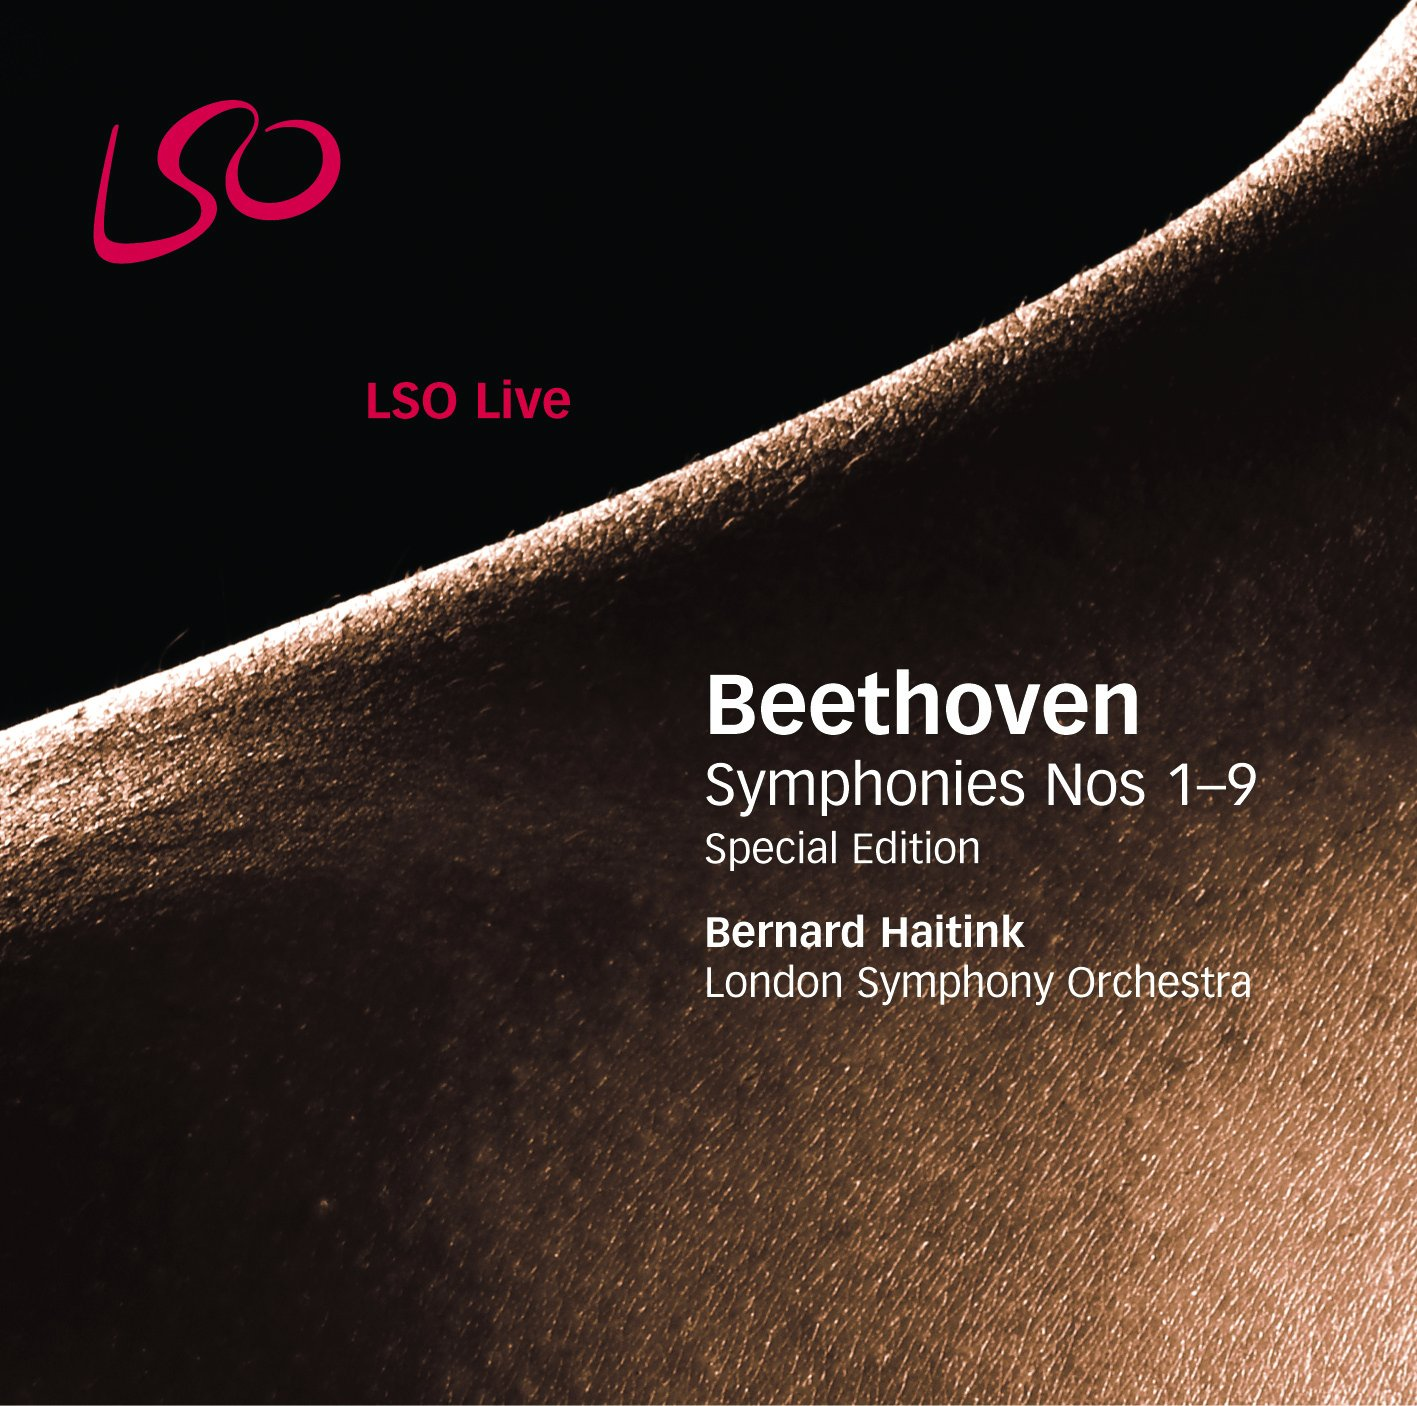 Beethoven: Symphonies Nos.1-9